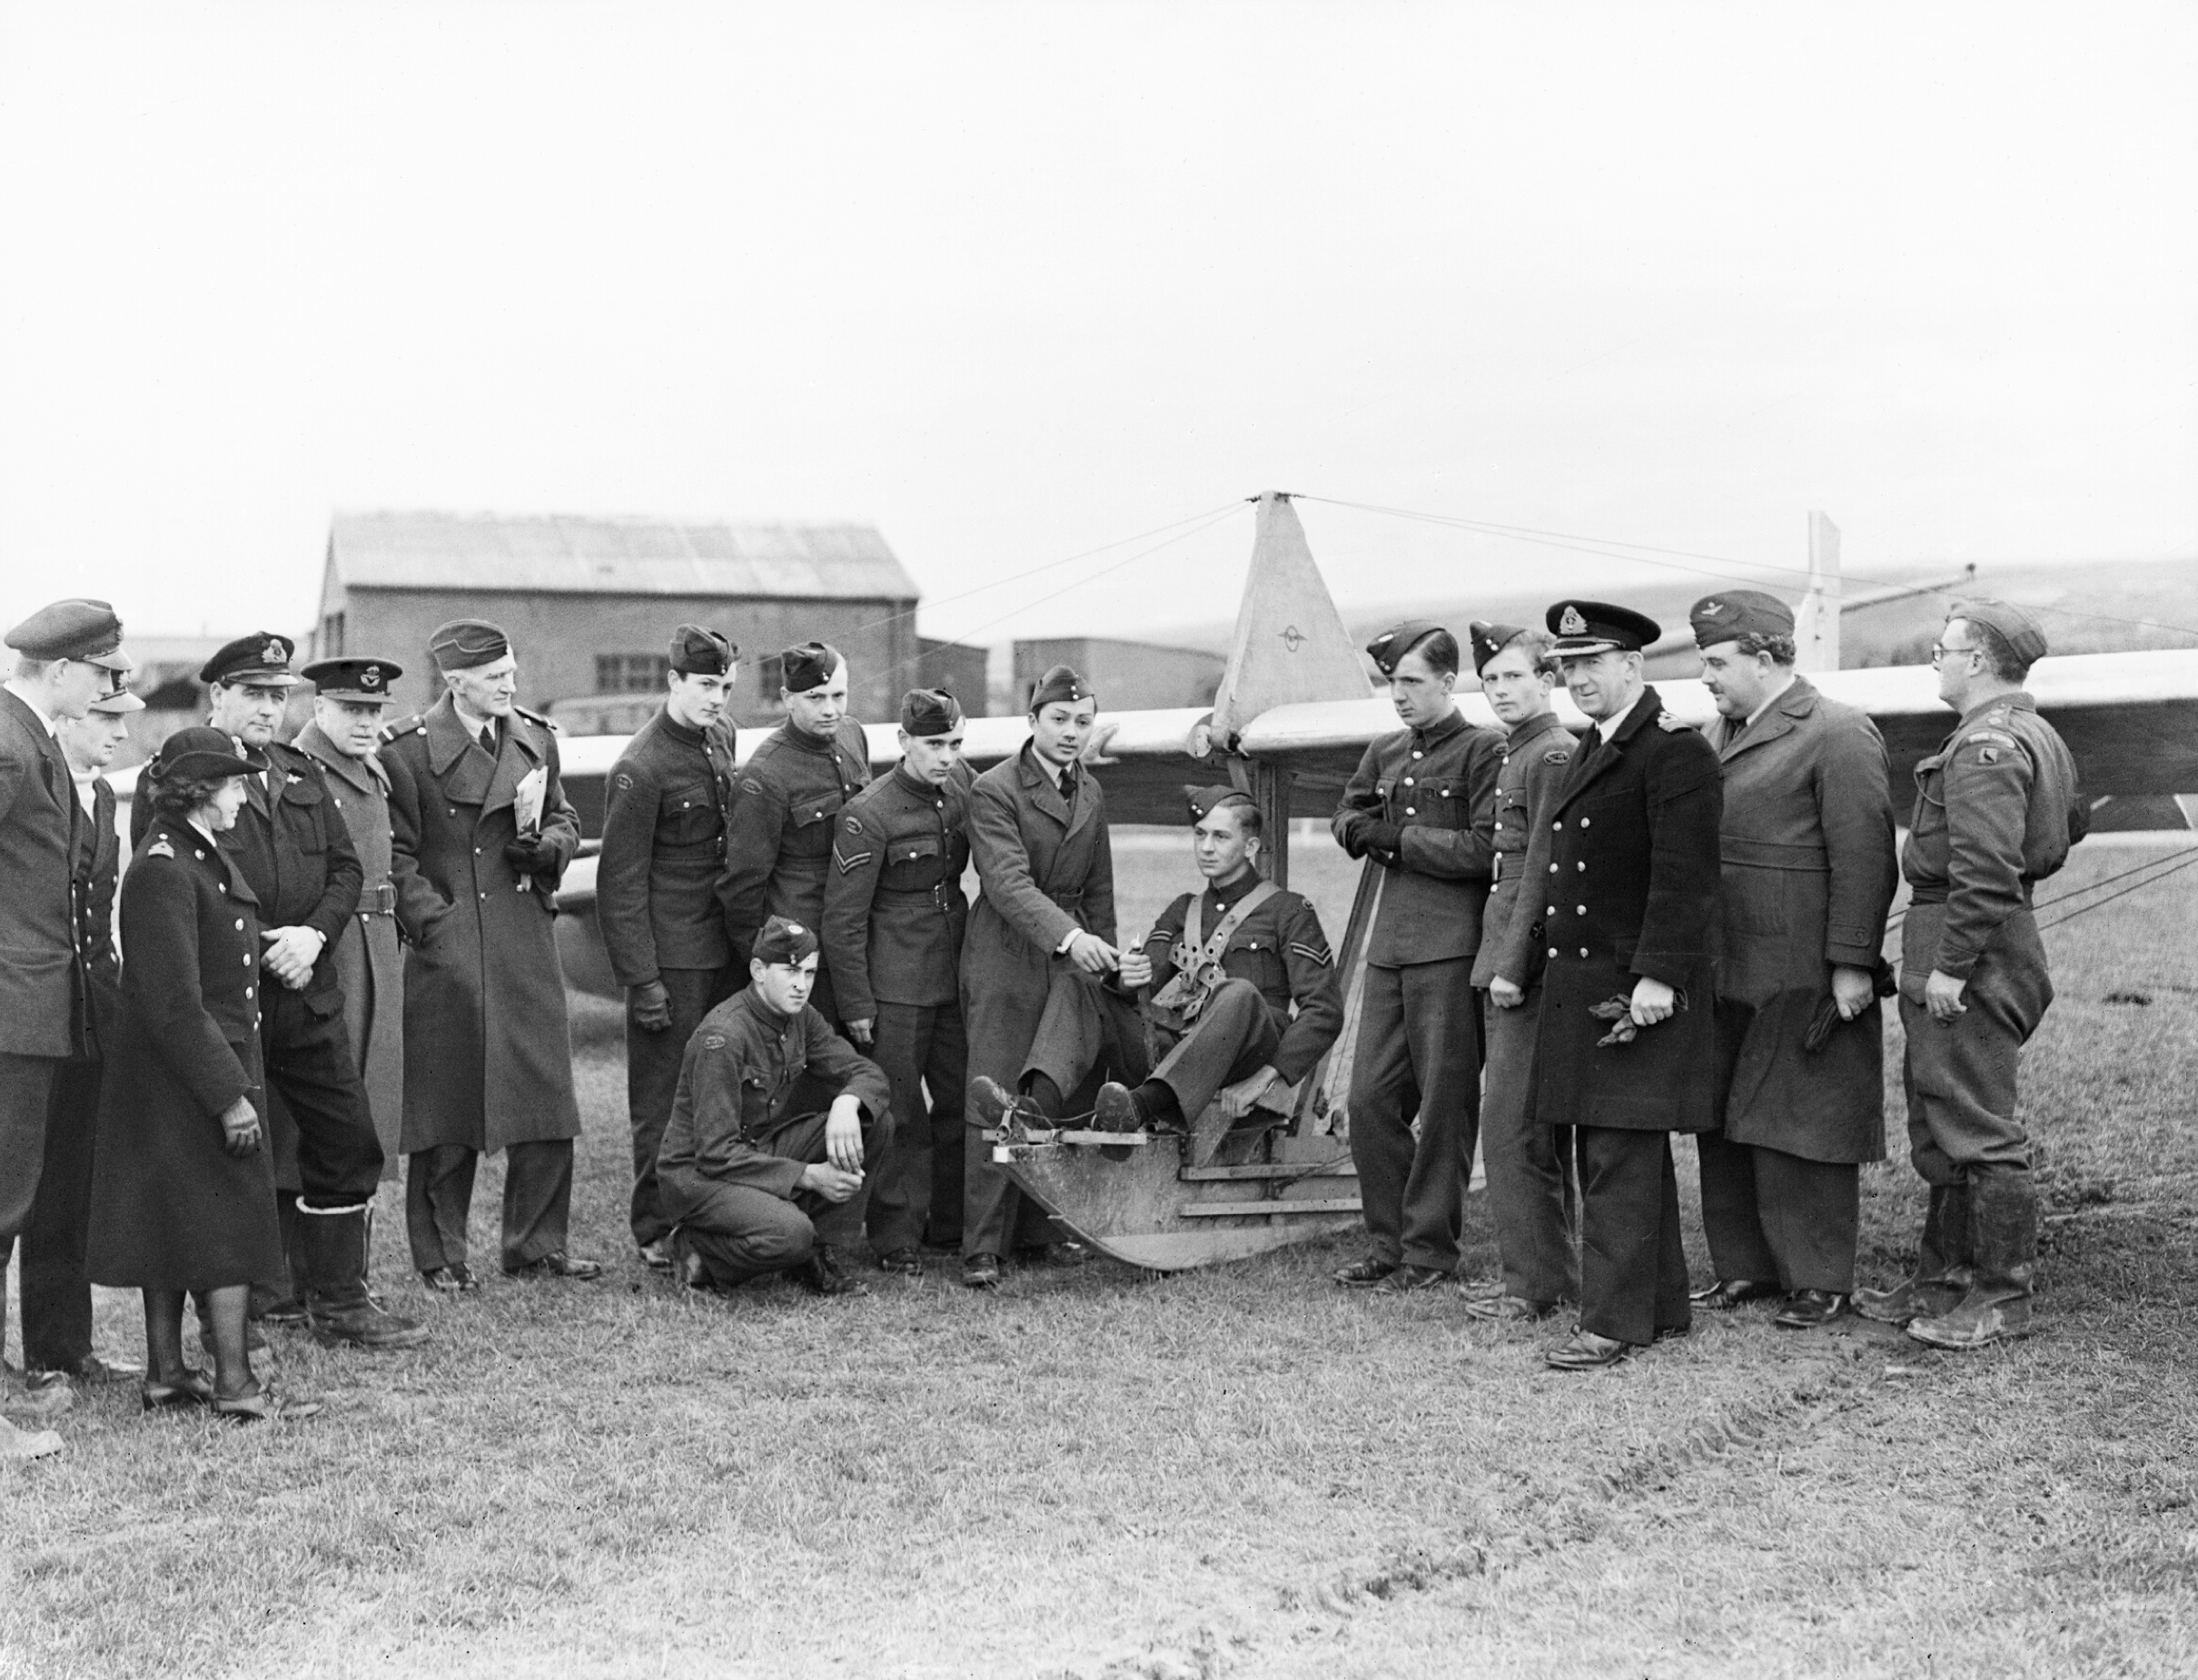 Air_cadets_learn_the_basics_of_flight_at_RNAS_St_Merryn_in_Cornwall,_February_1944._A22064